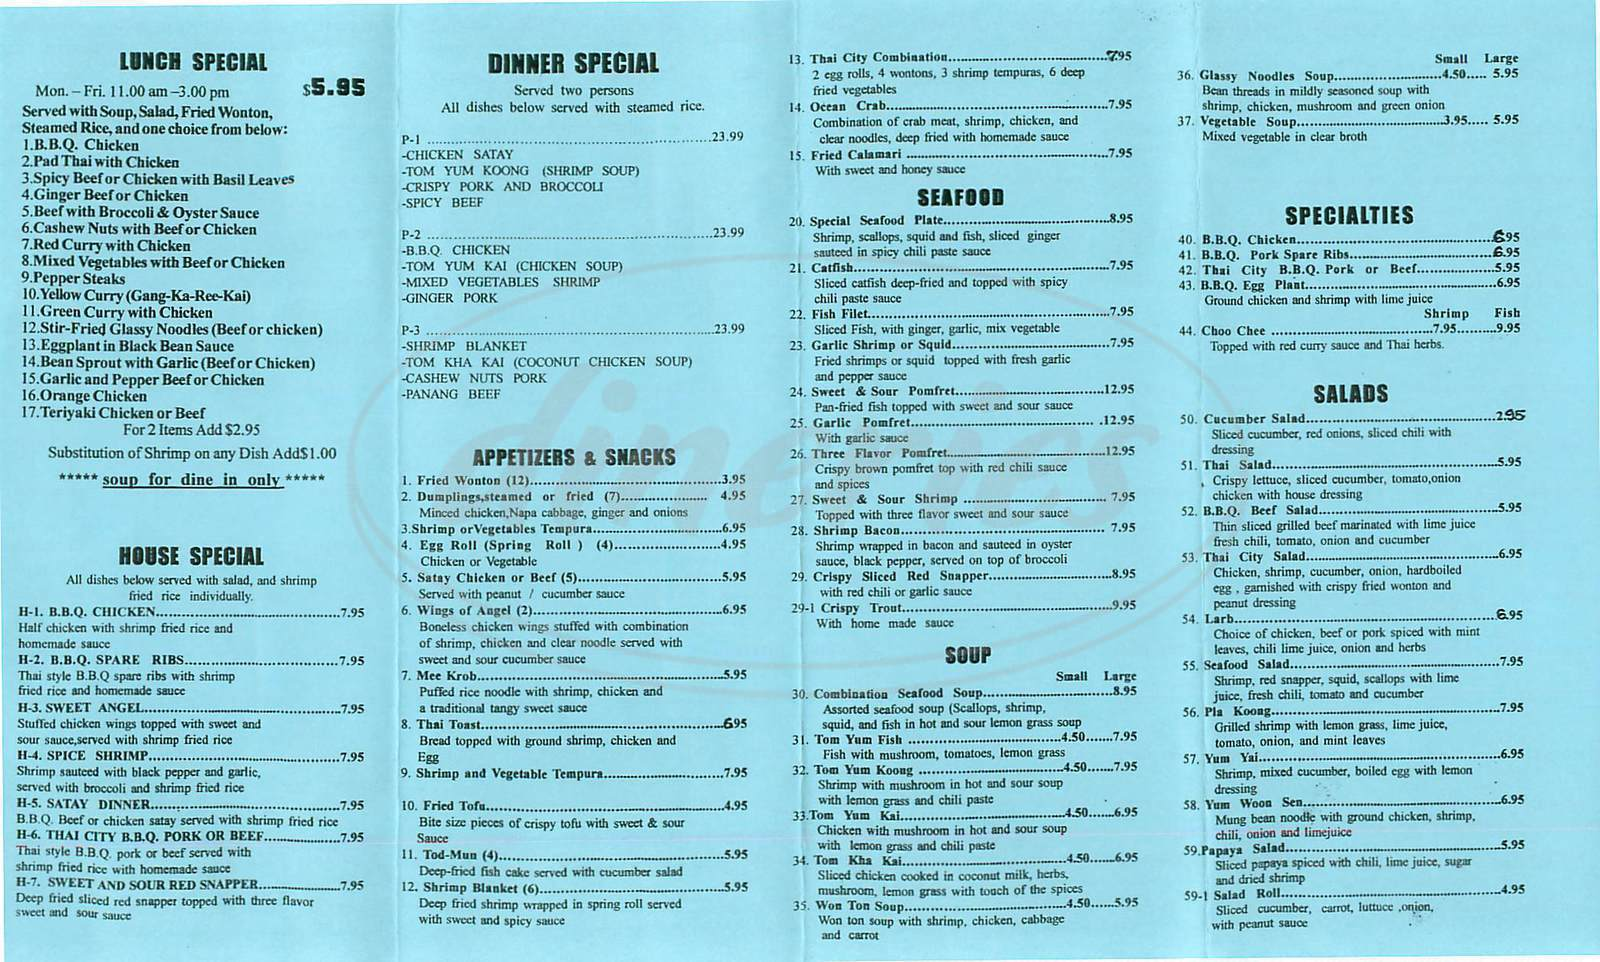 menu for Thai City Restaurant